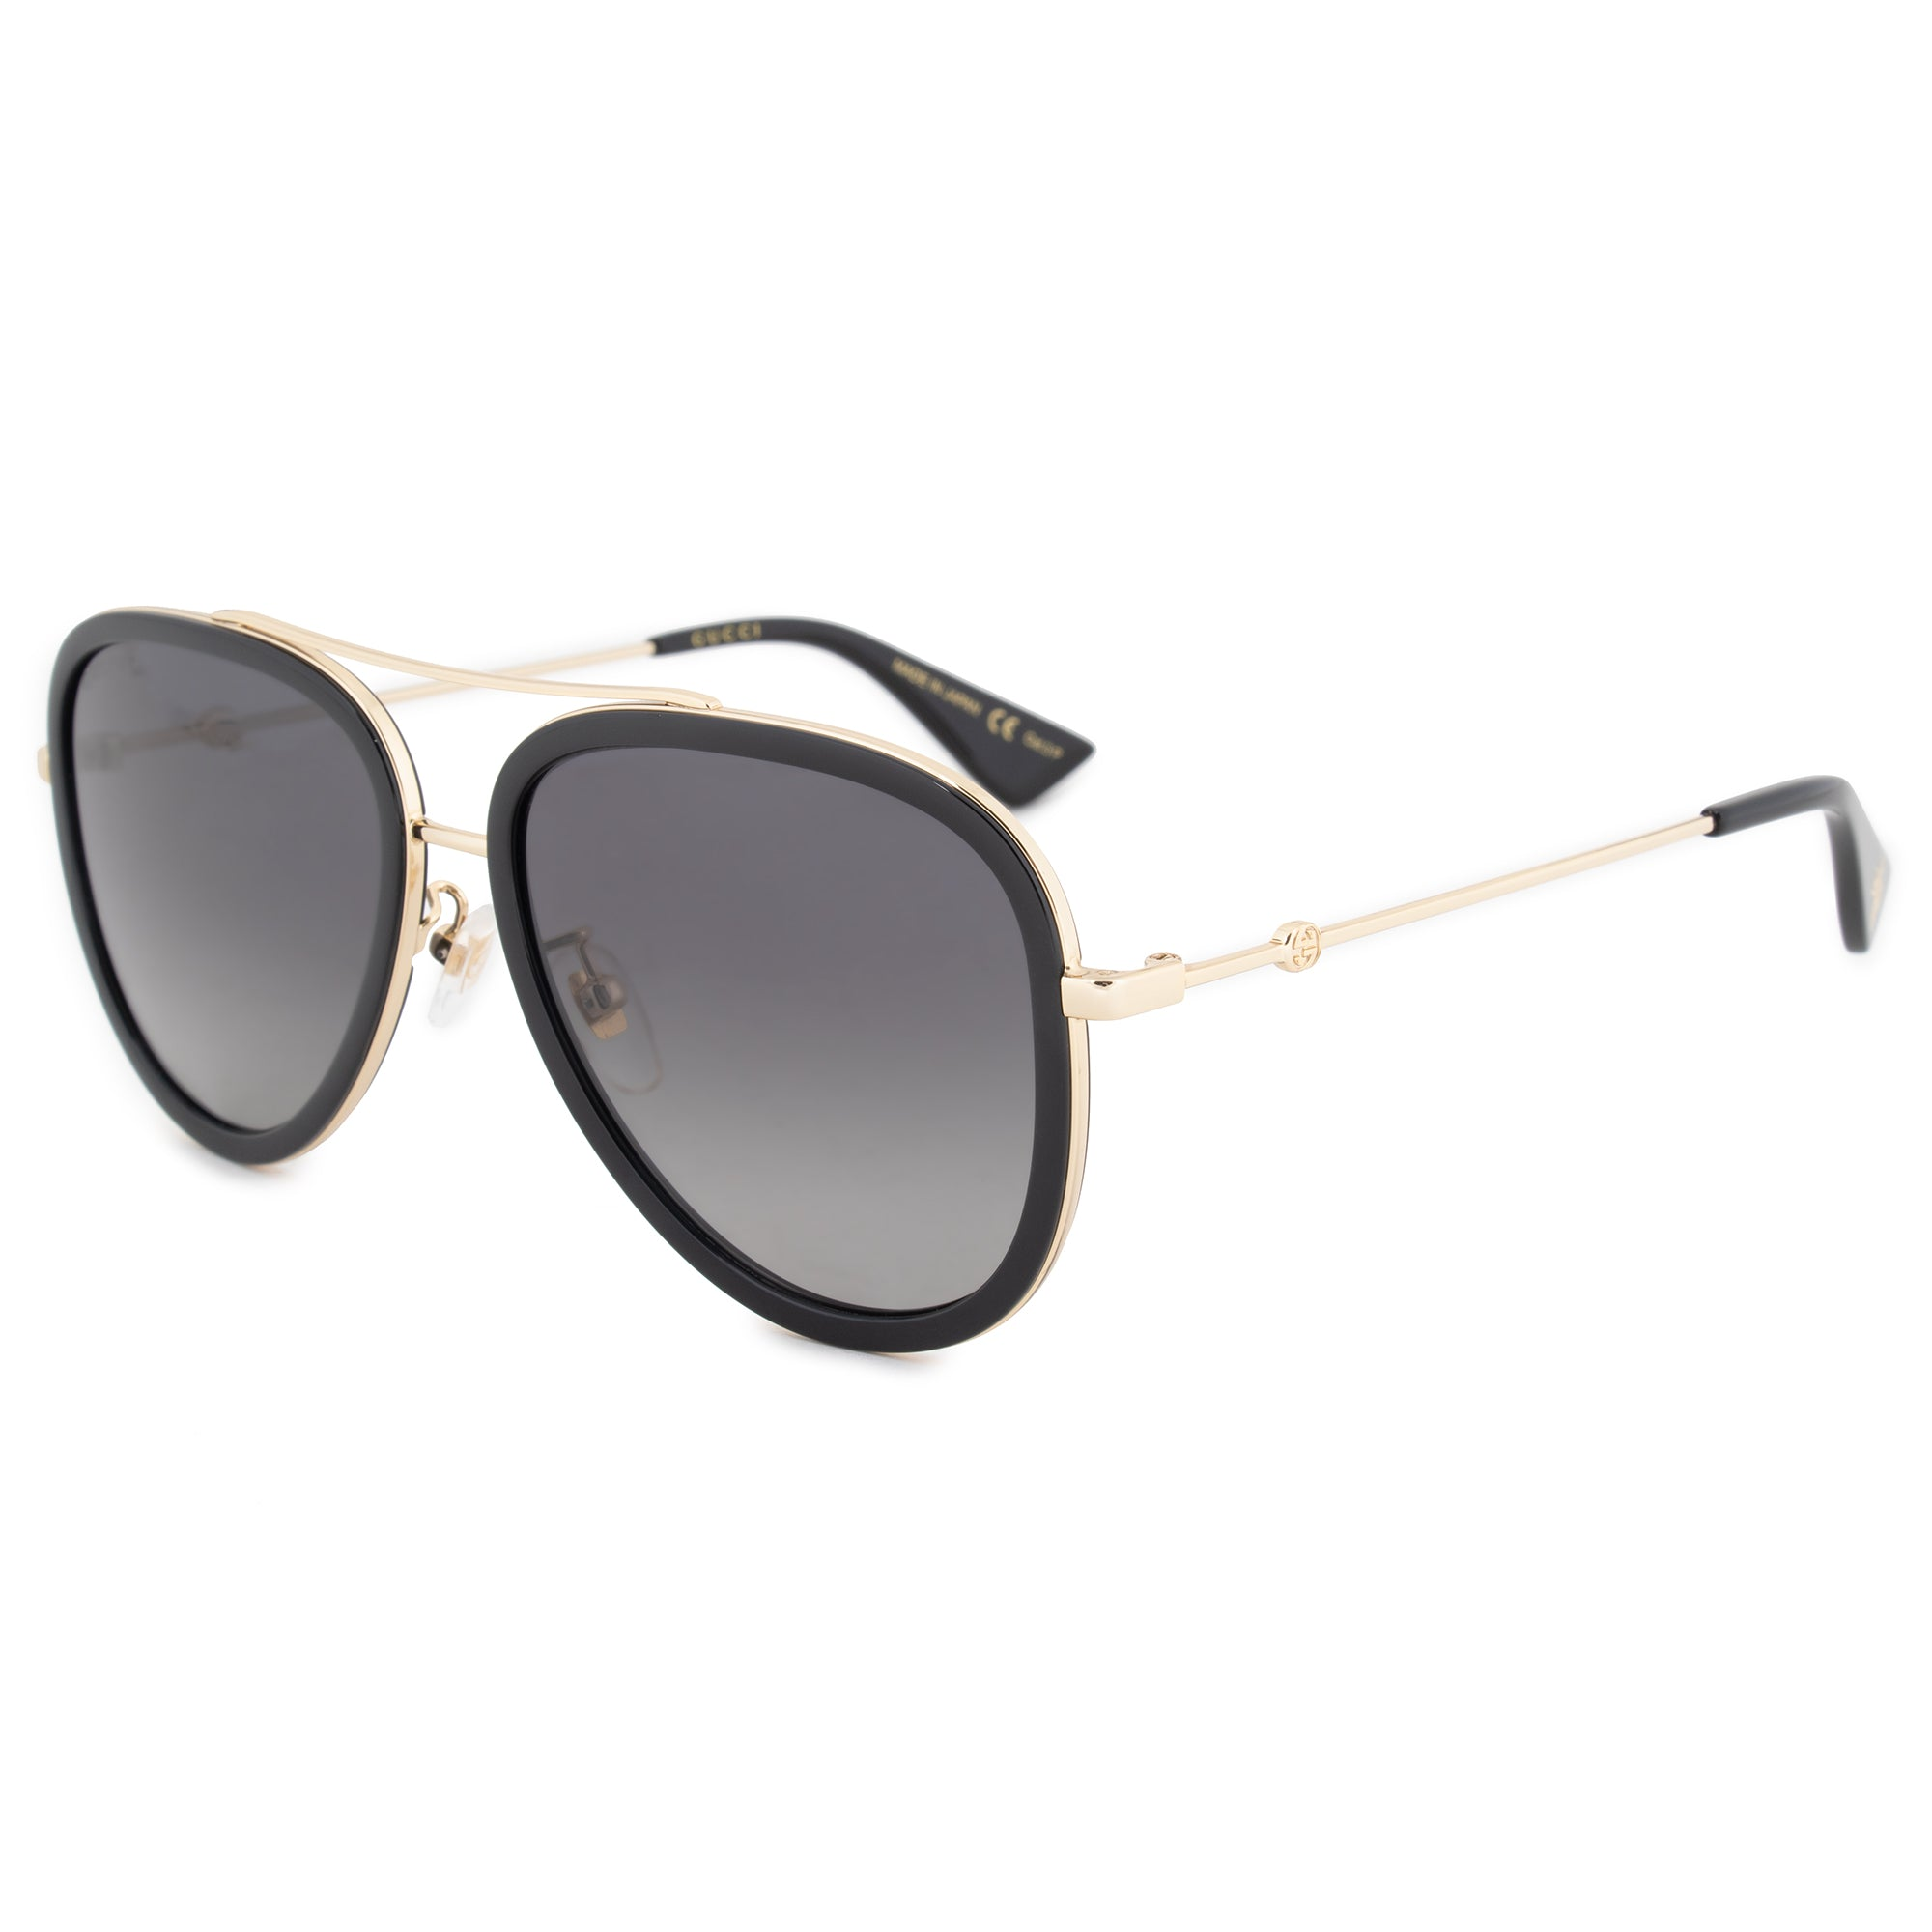 Gucci Polarized Aviator Sunglasses GG0062S 011 57